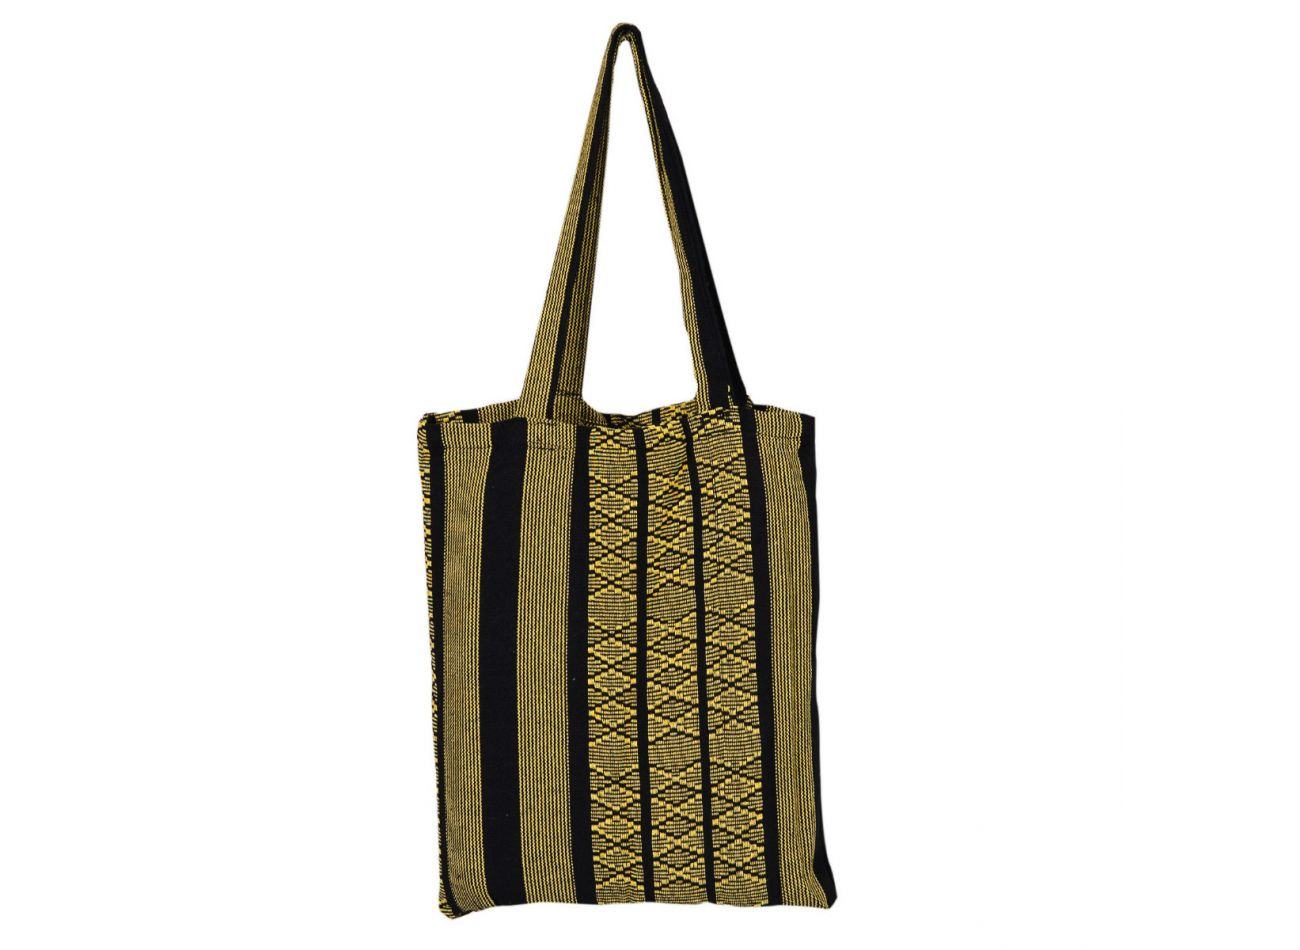 Hangmatset Familie Wicker & Black Edition Gold